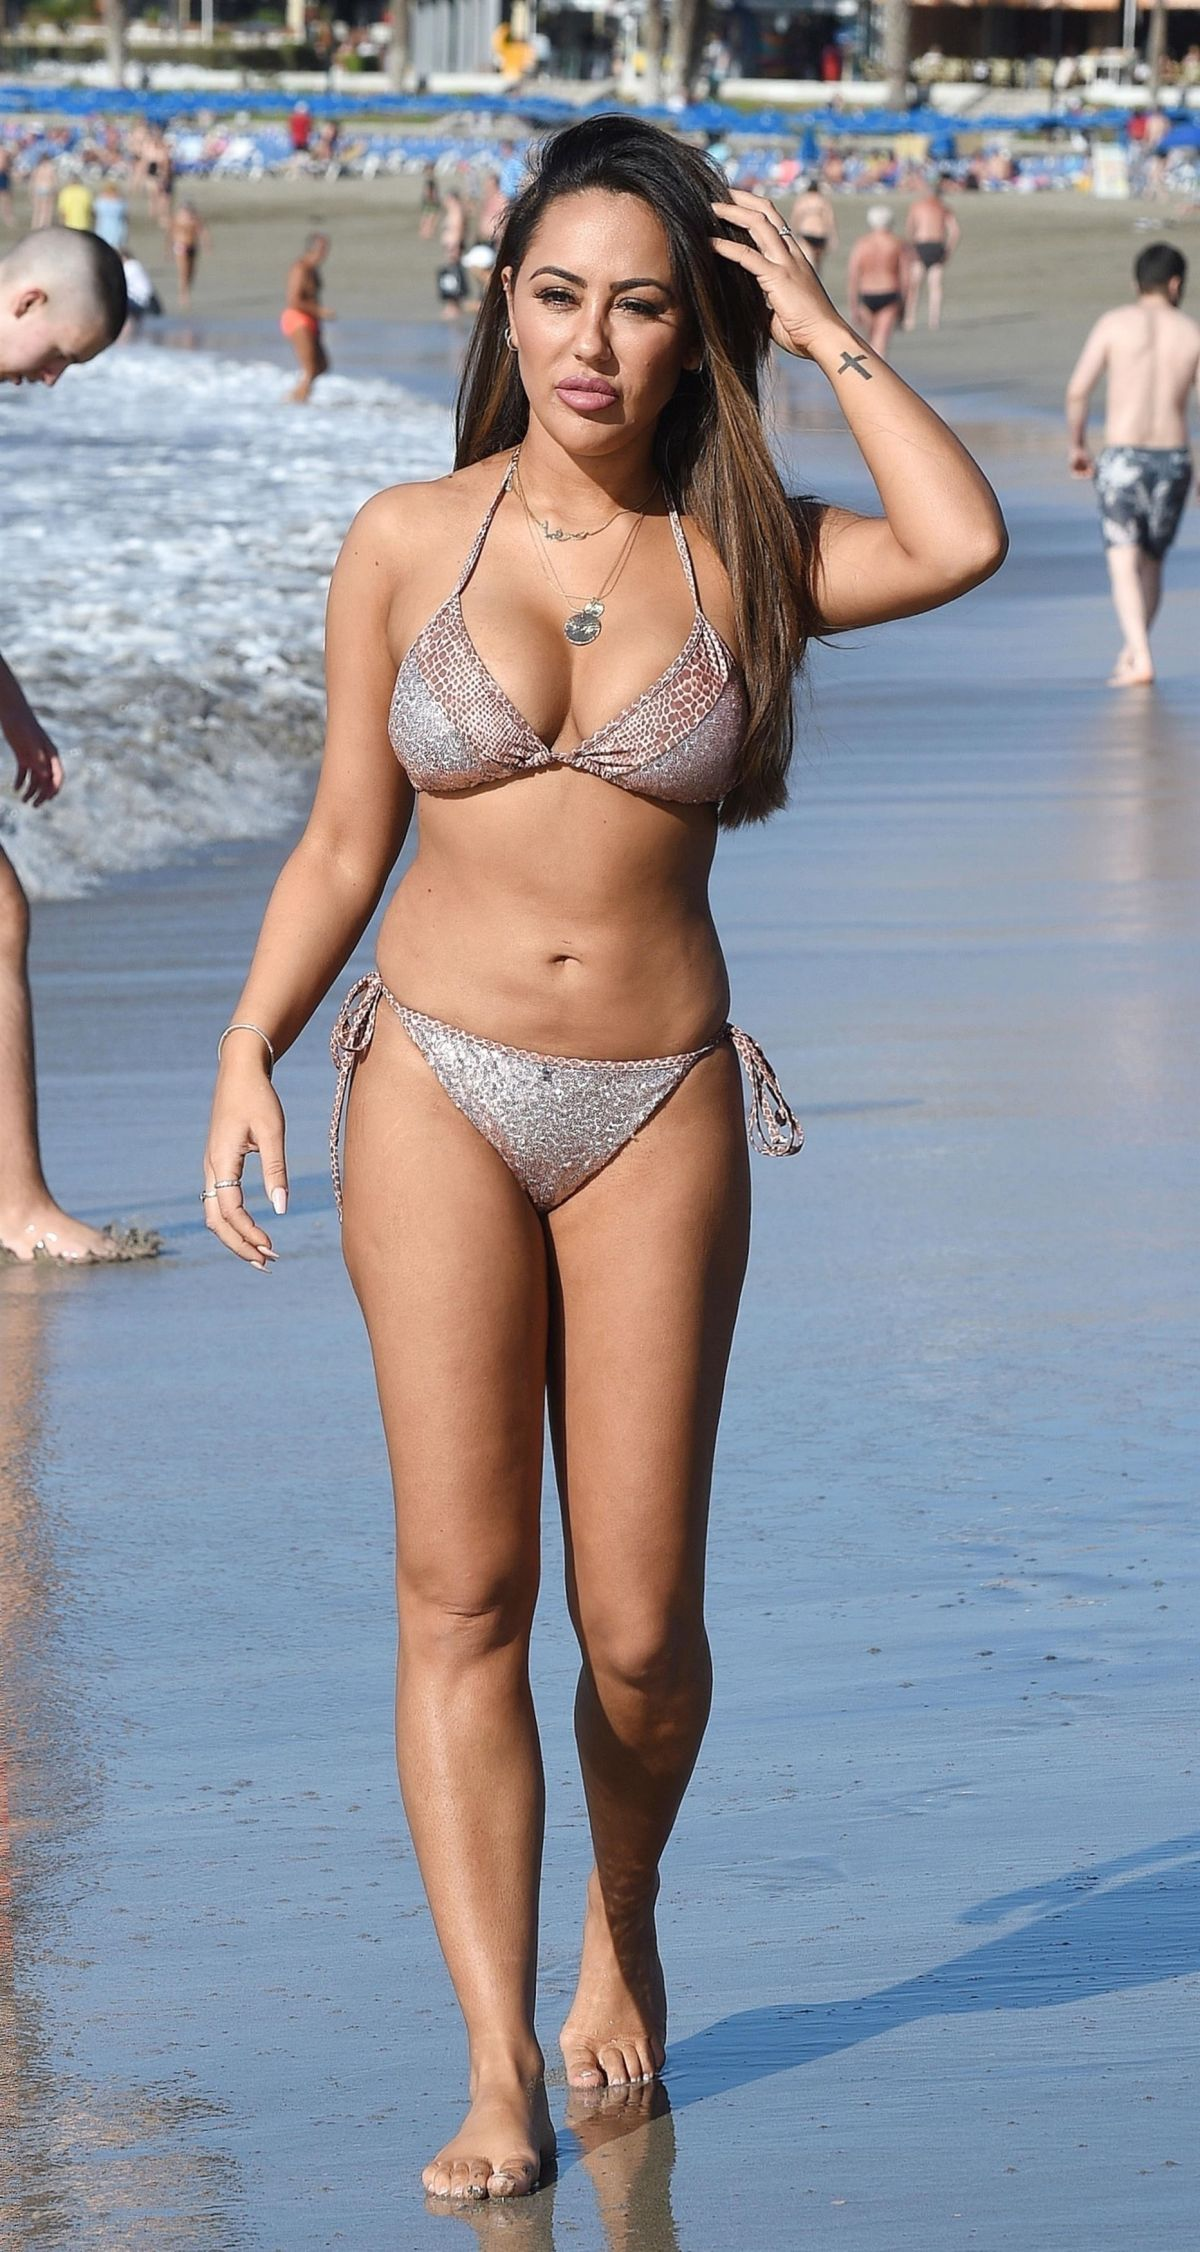 Sophie Kasaei Is seen on holiday in Turkey wearing a barely there bikini on  the beach